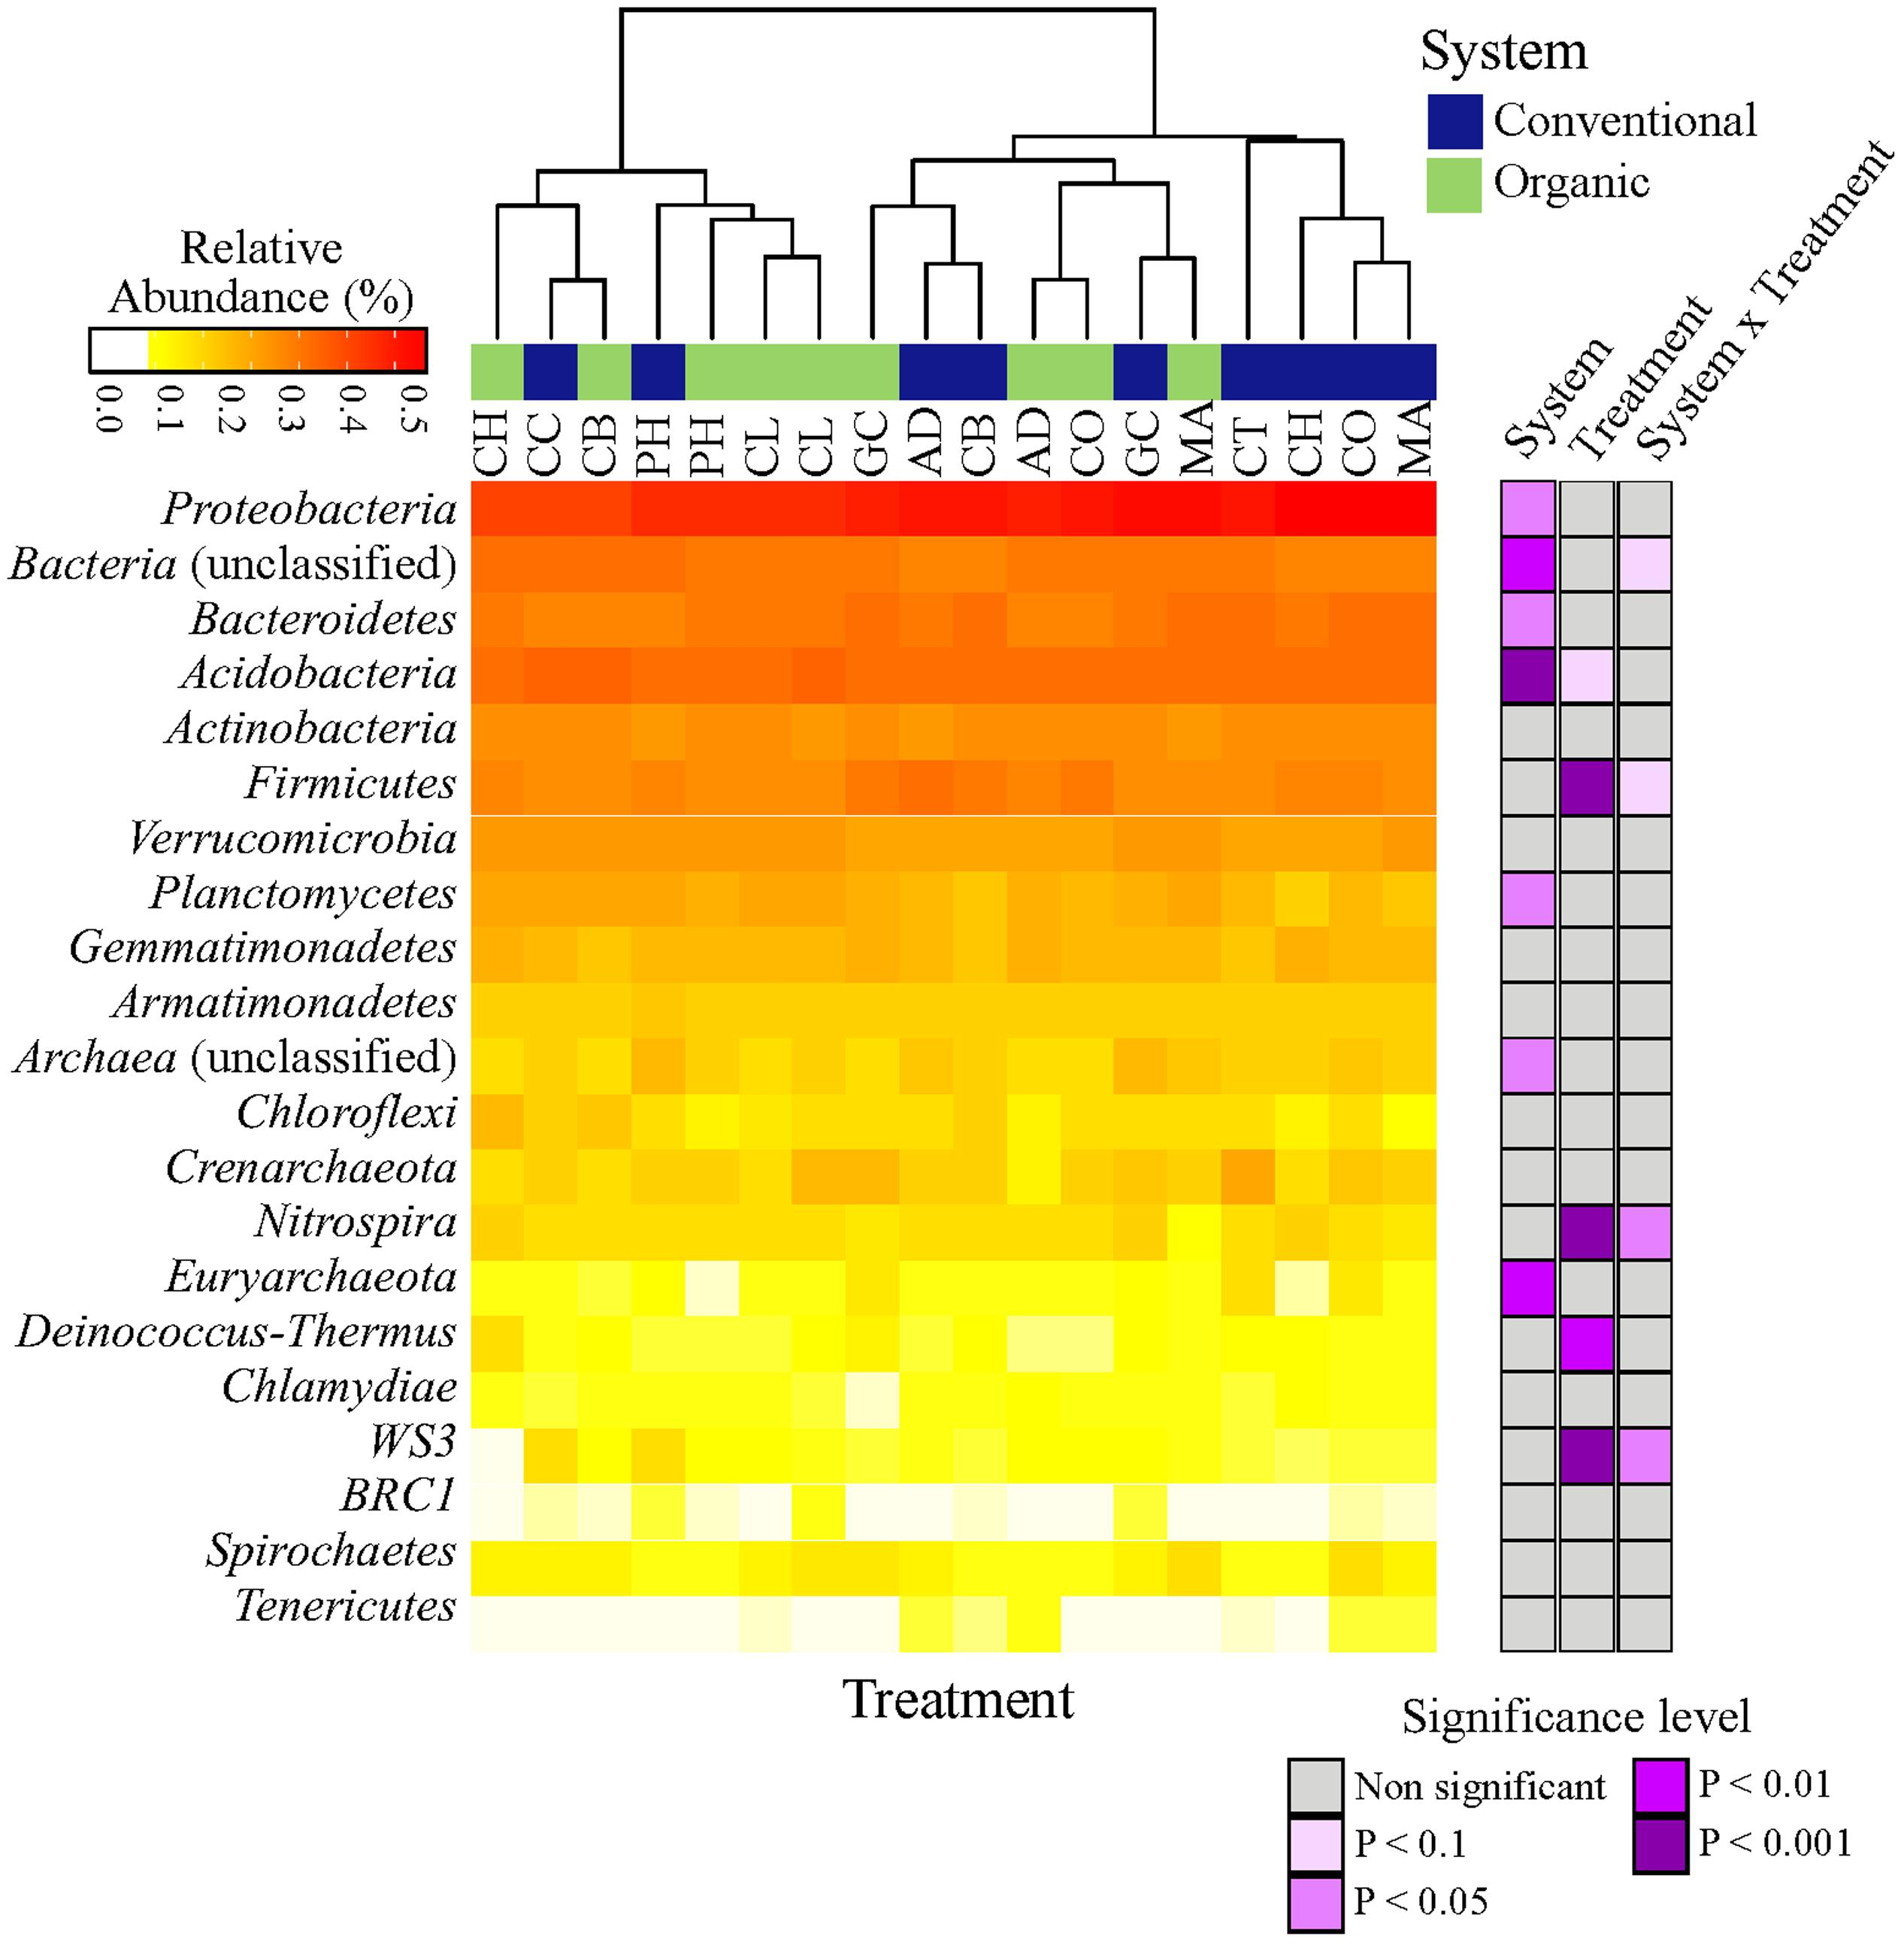 Frontiers | Soil Microbiome Is More Heterogeneous in Organic Than in